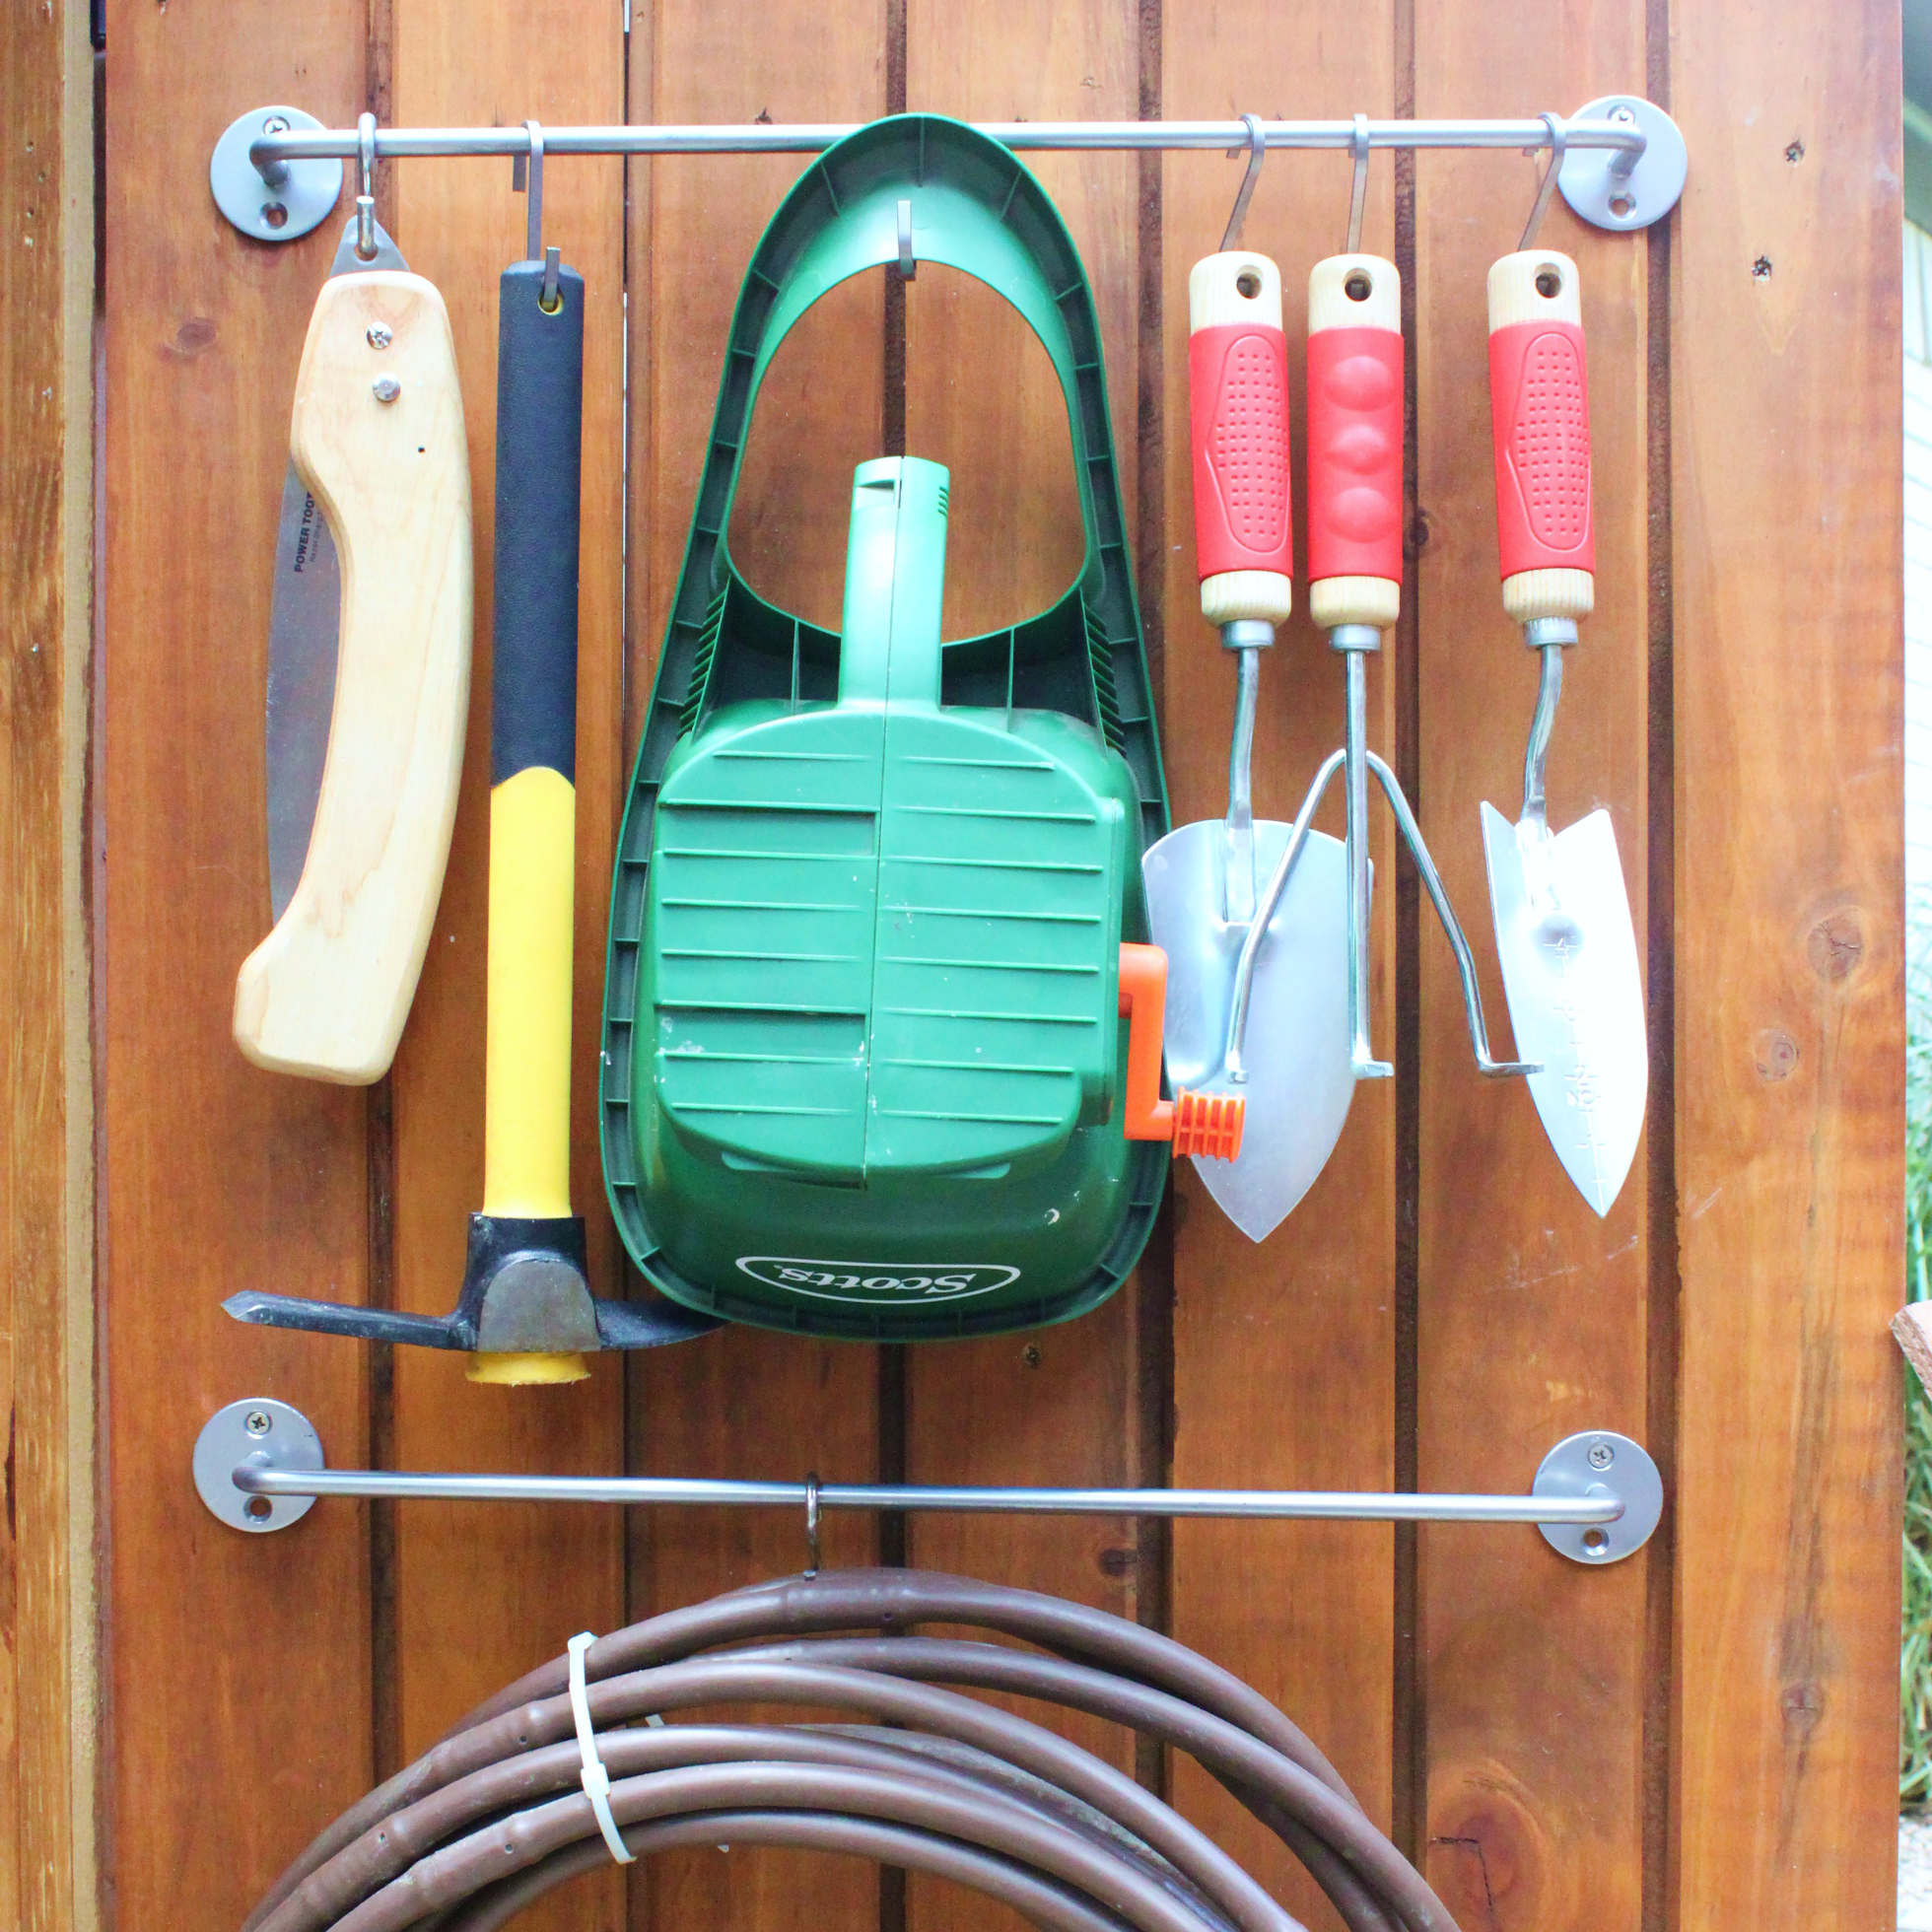 Outdoor tools hanging from s hooks on a wood door